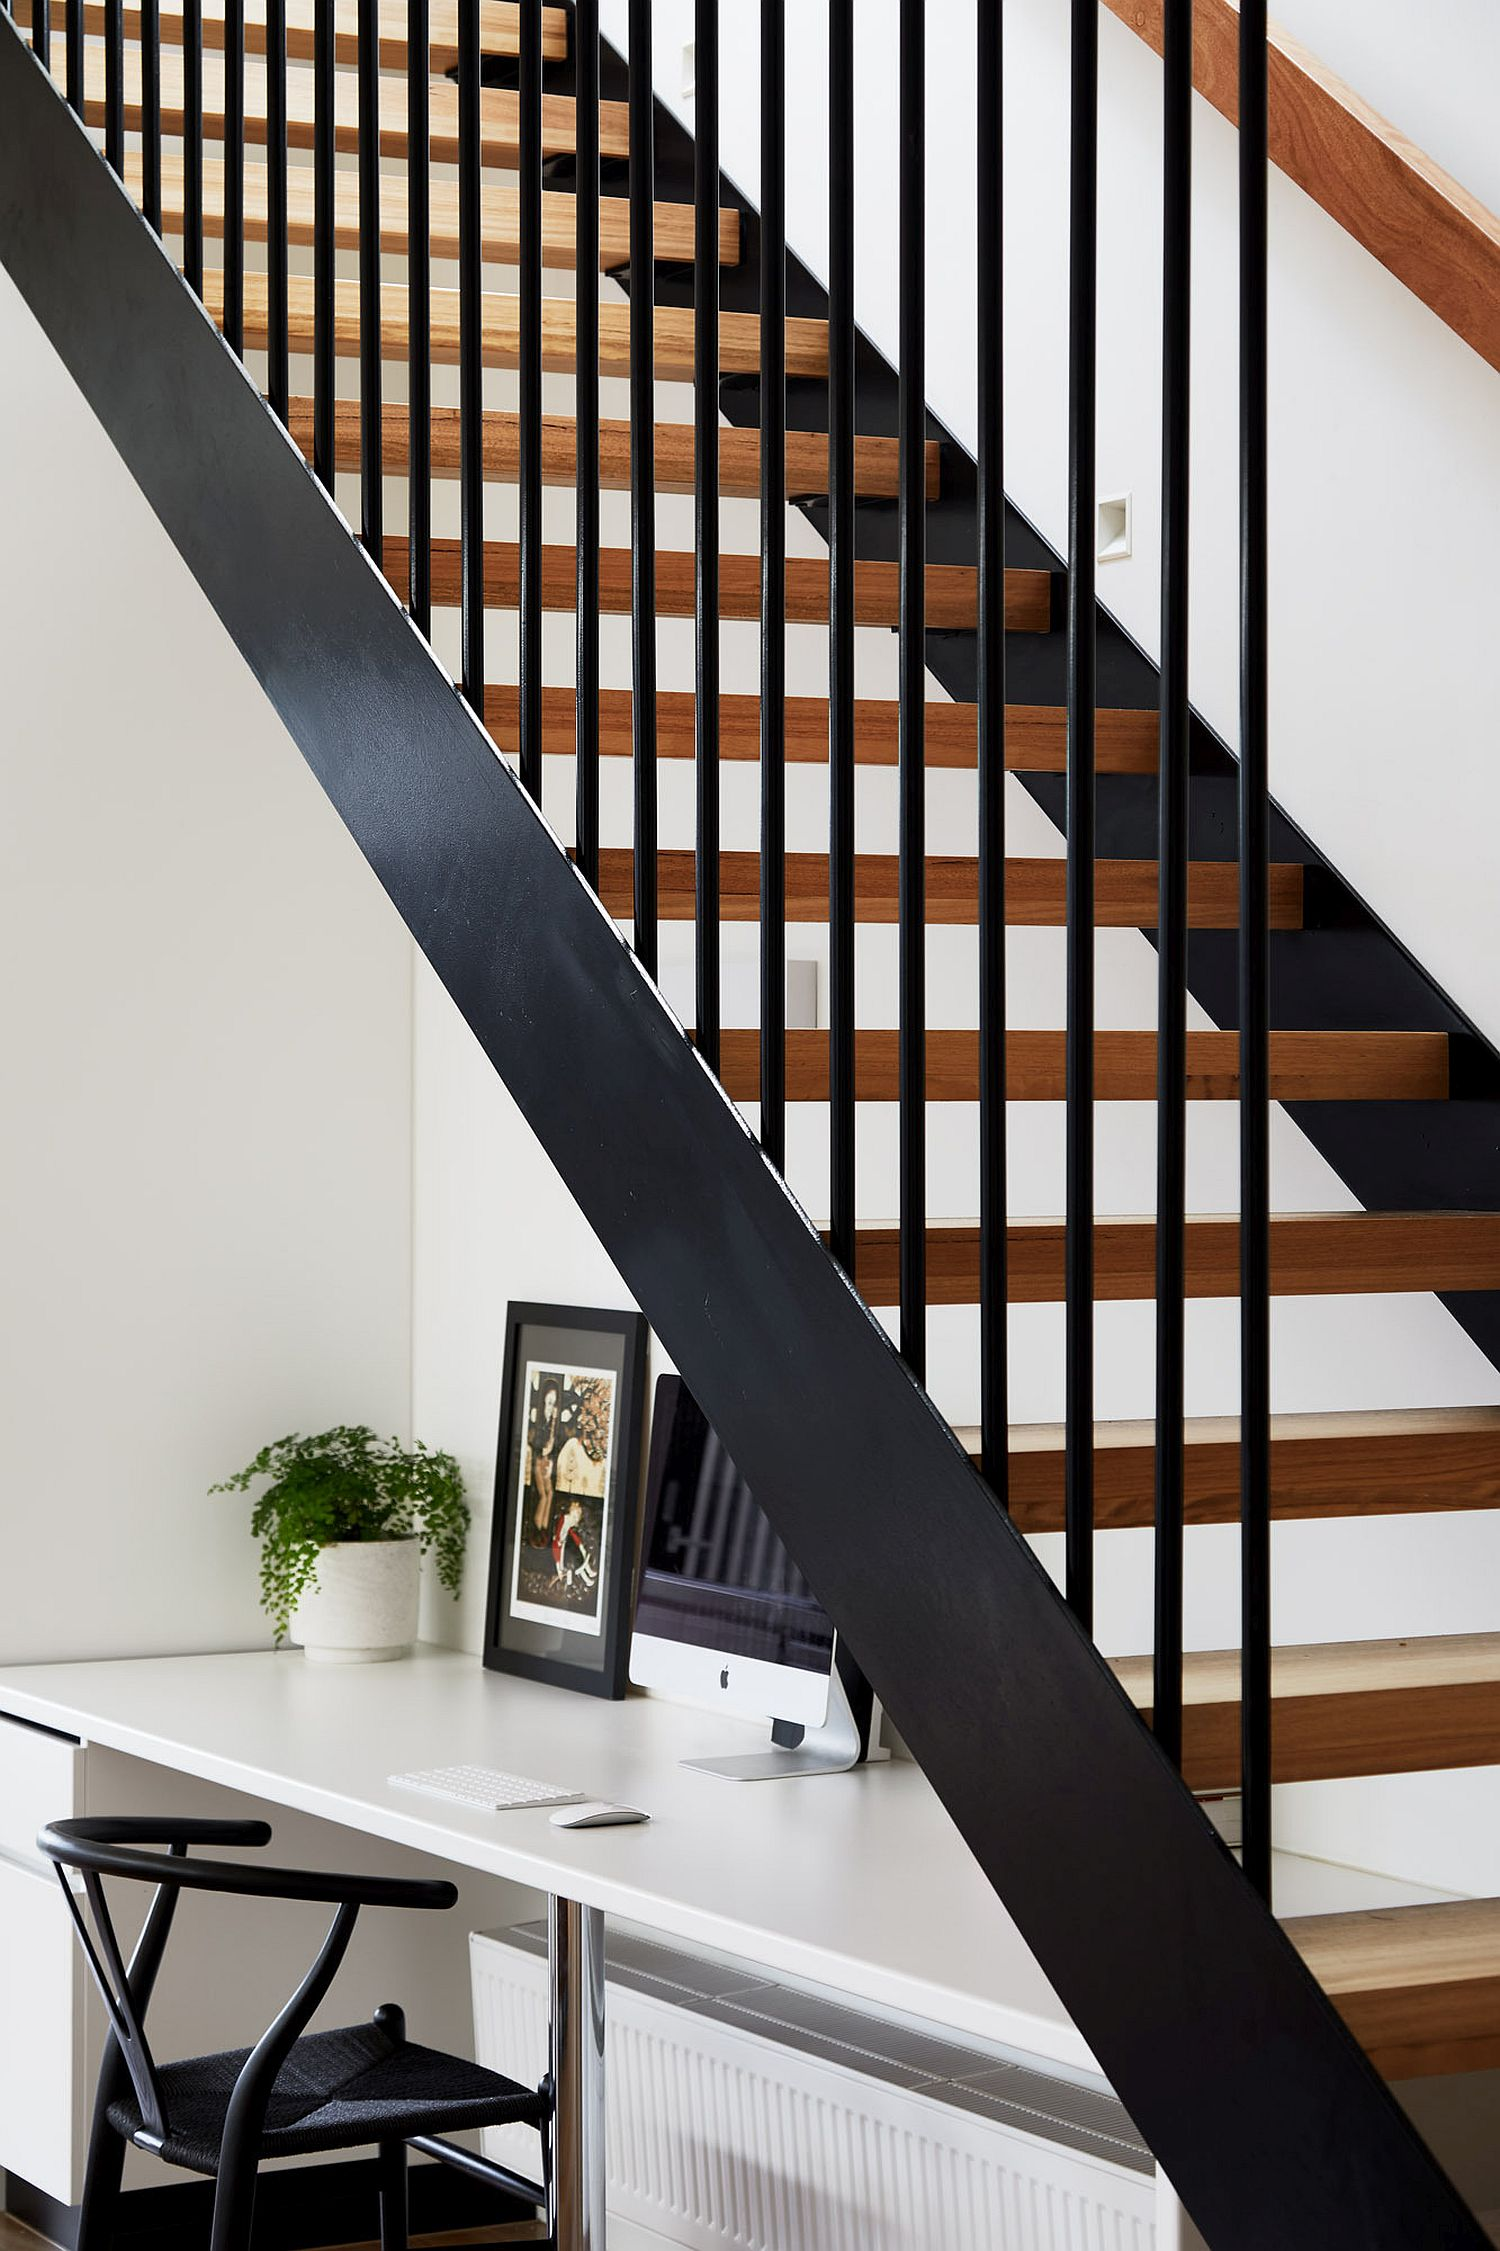 Wood and metal staircase inside the modern Edwardian house